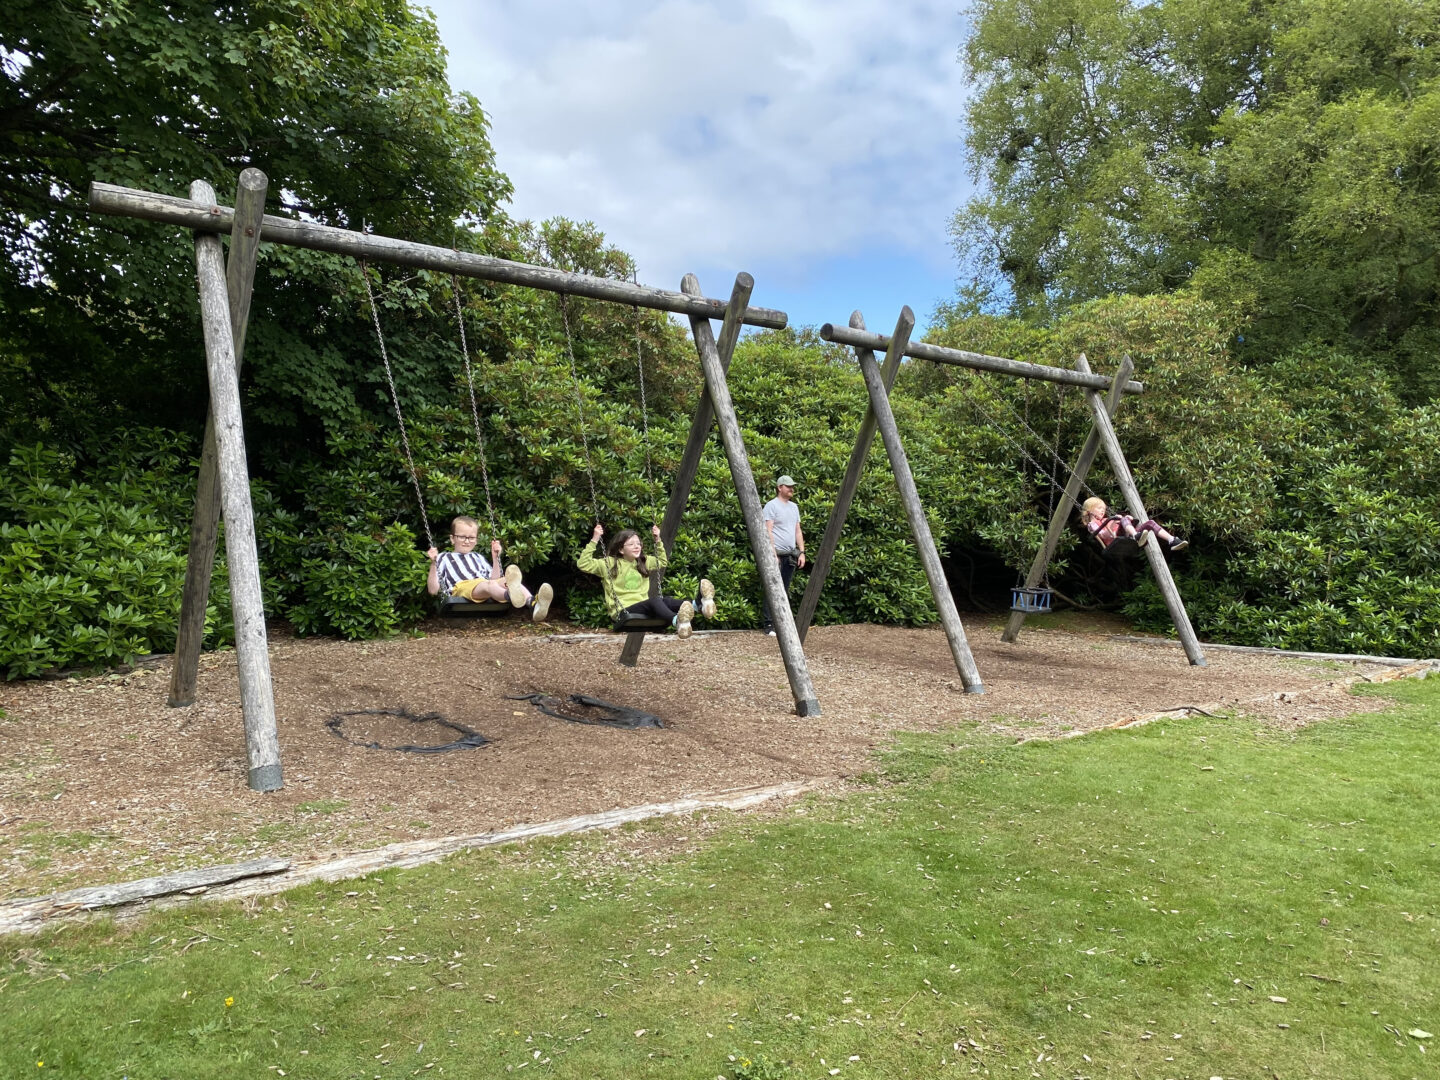 Children playing on the swings at Crombie Park